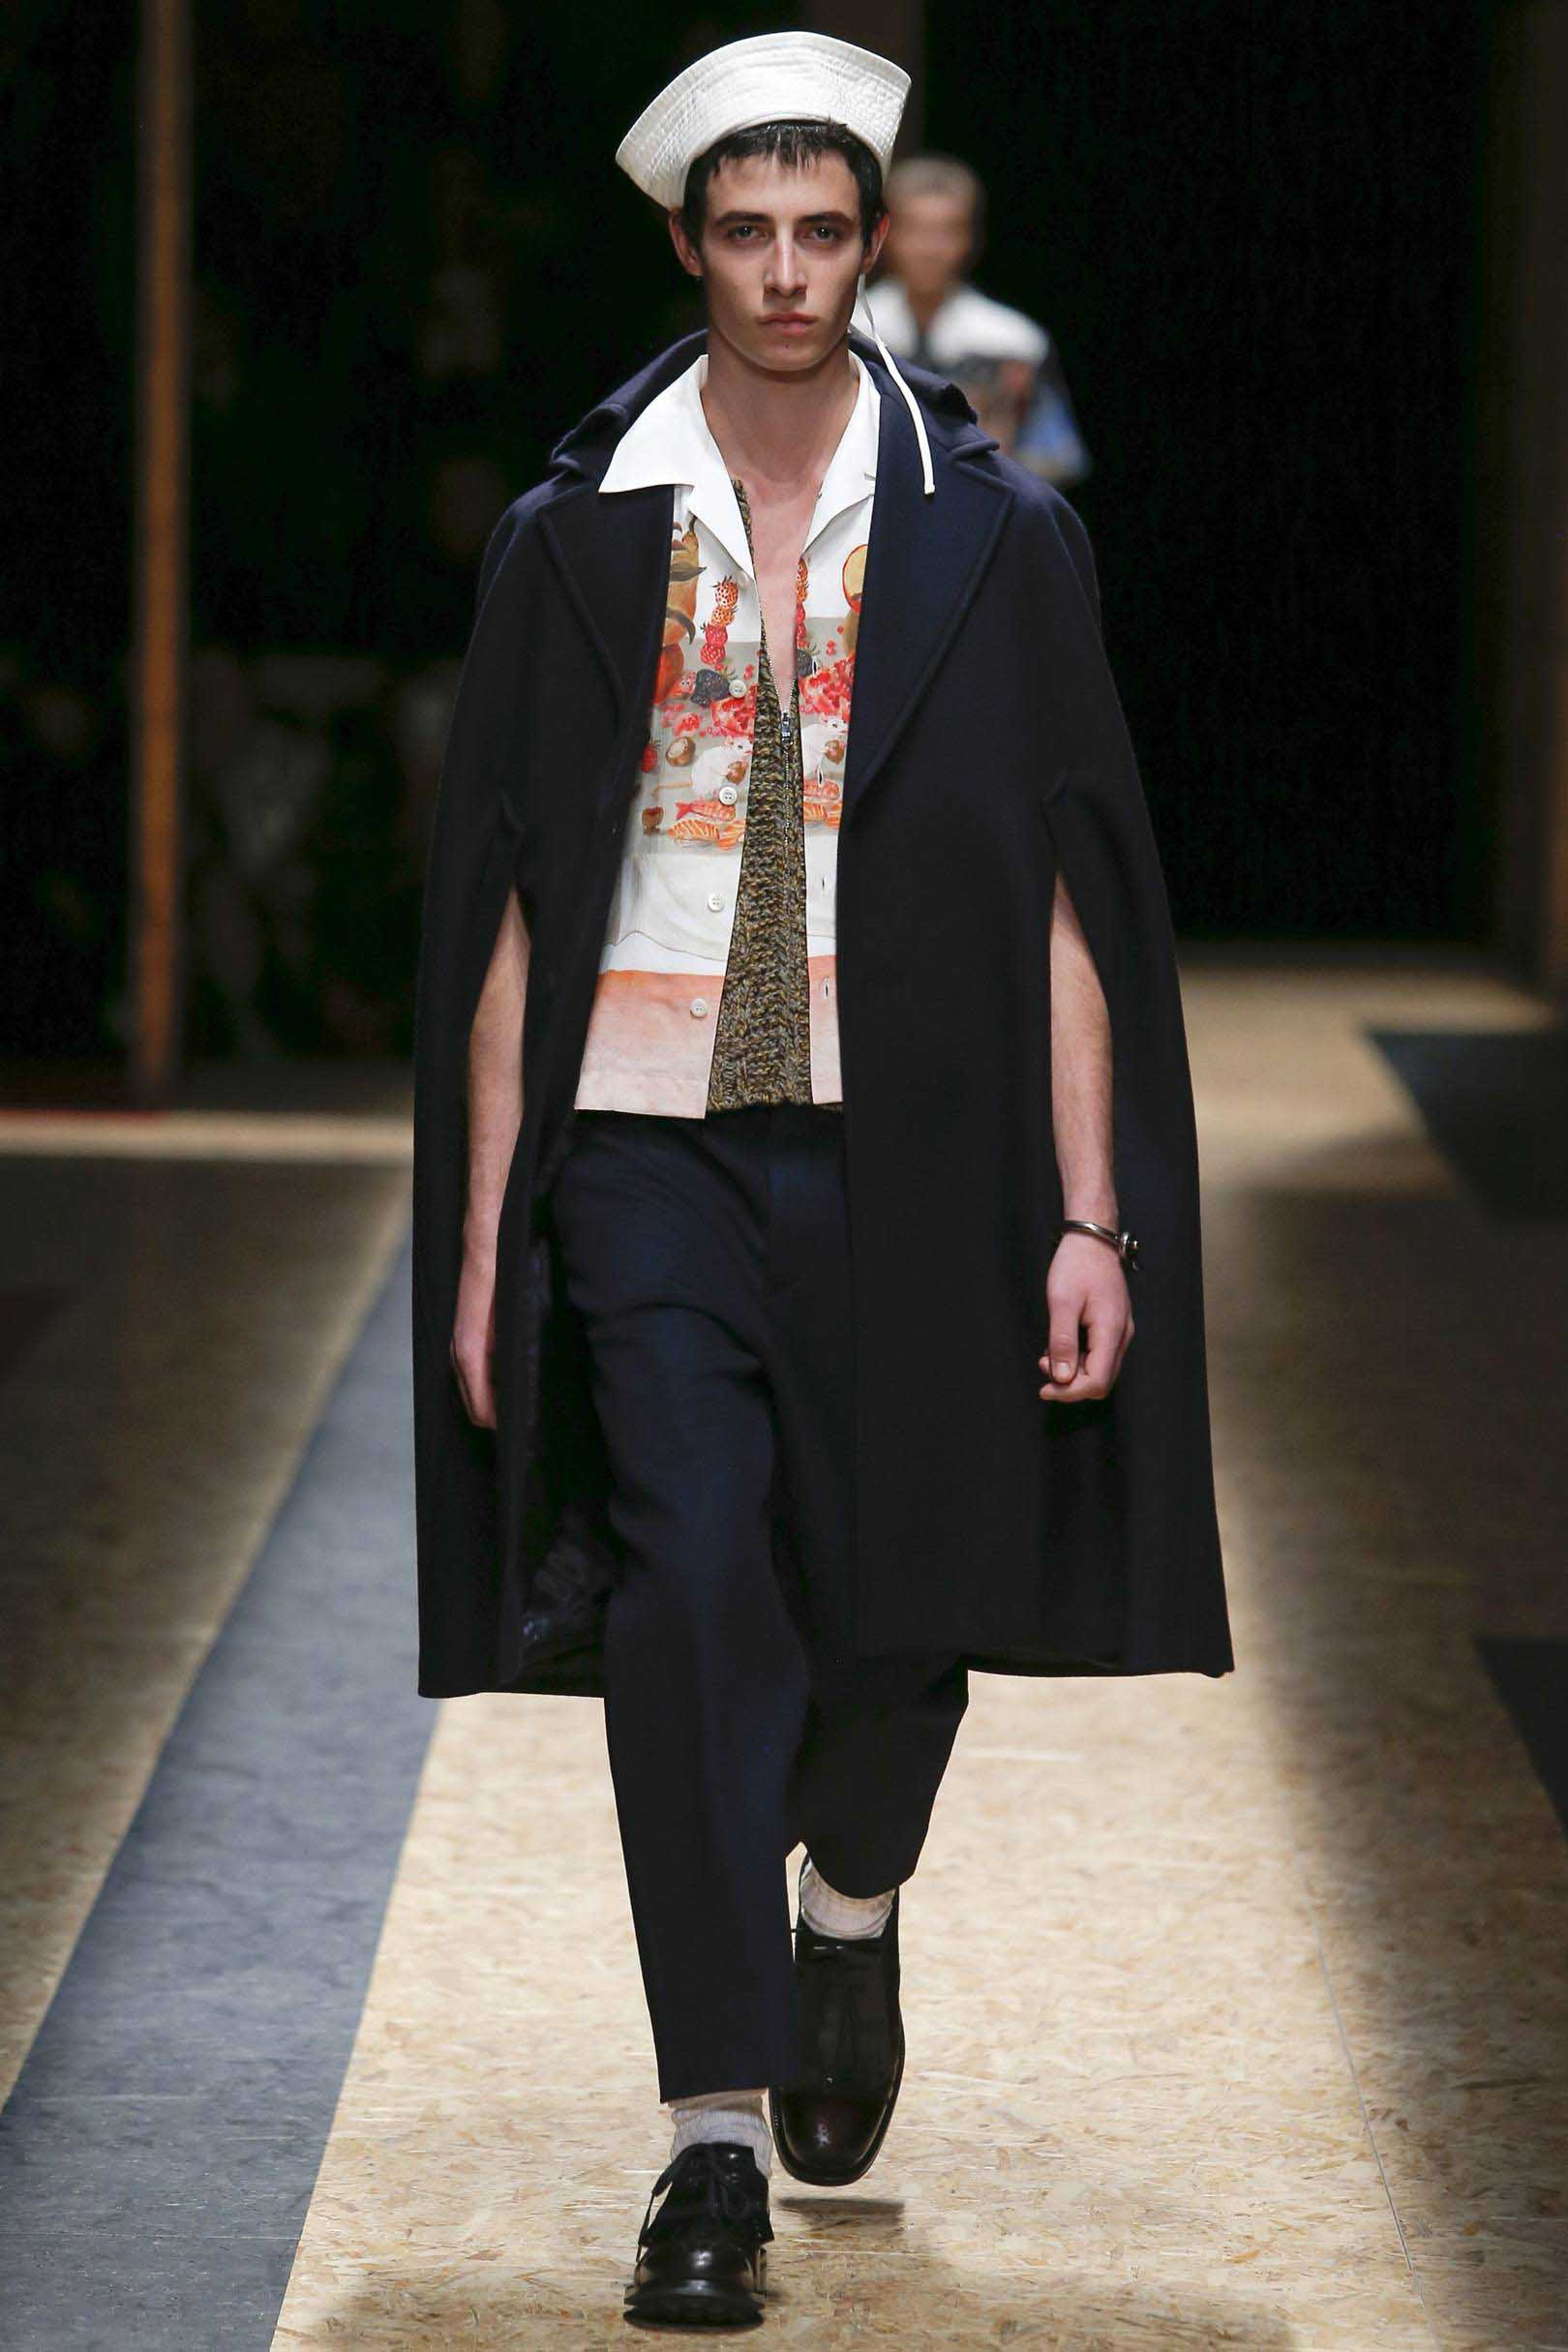 Look 3 from the Autumn/Winter 2016 collection